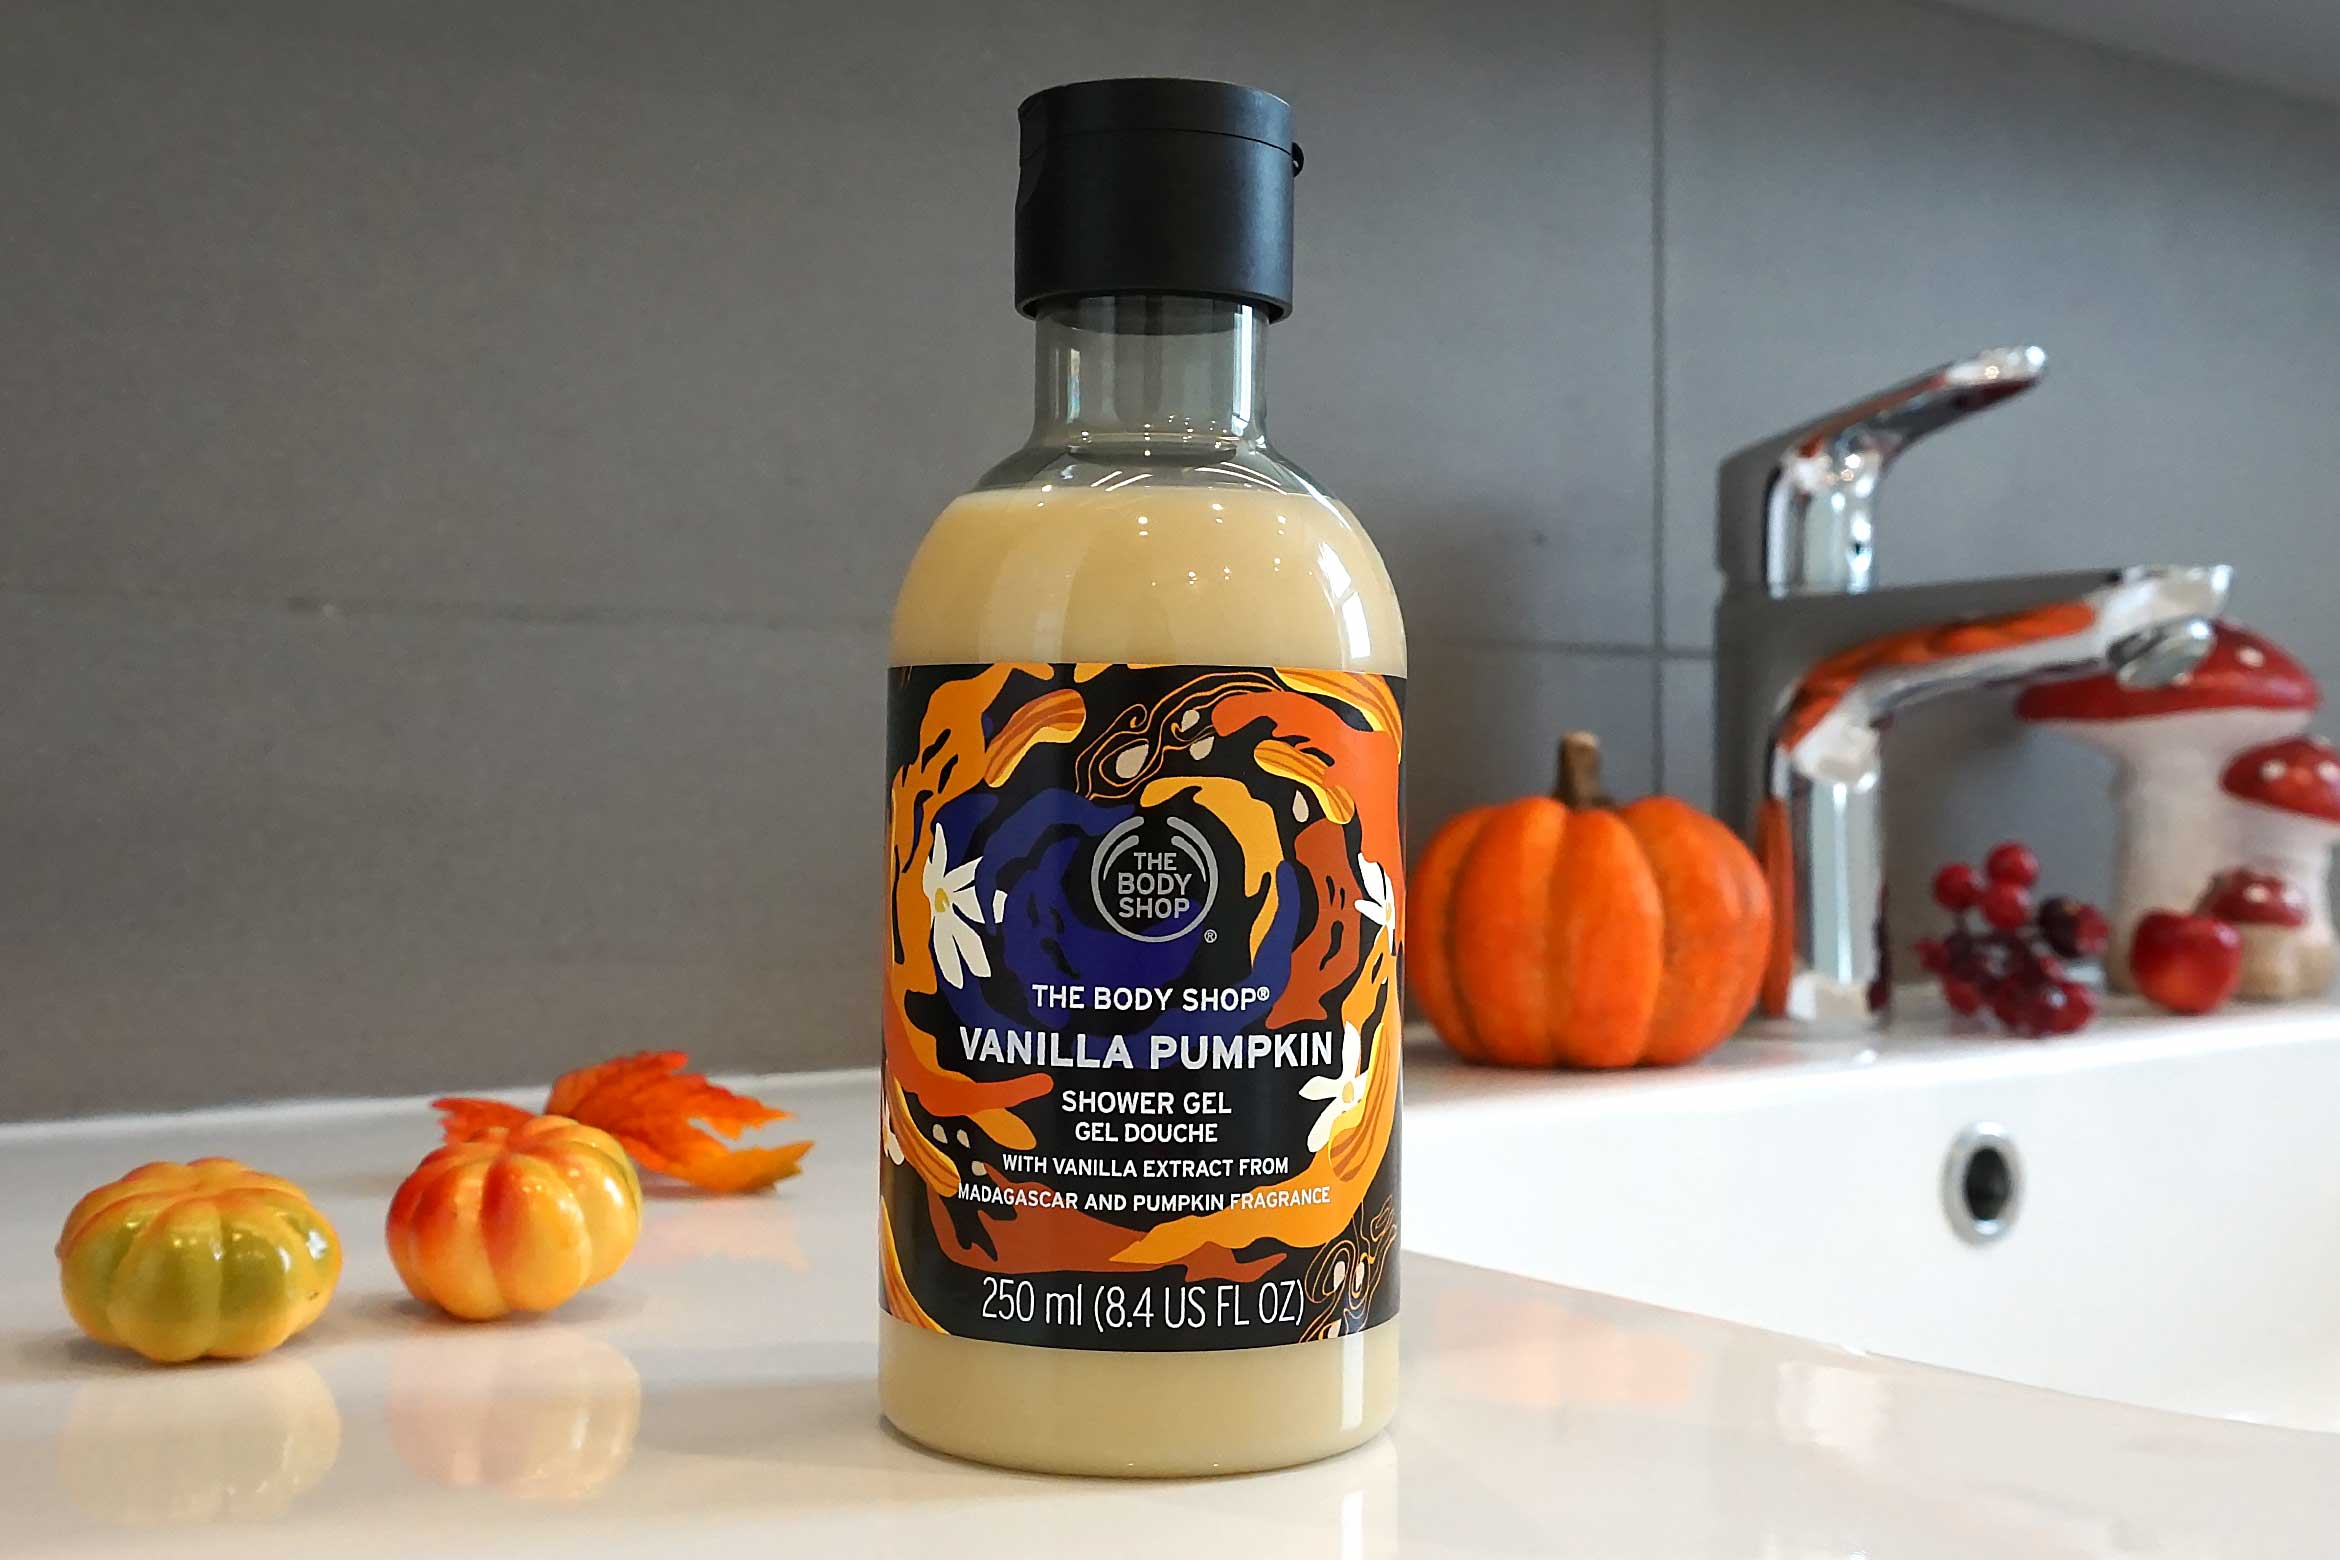 the body shop vanilla pumpkin shower gel review